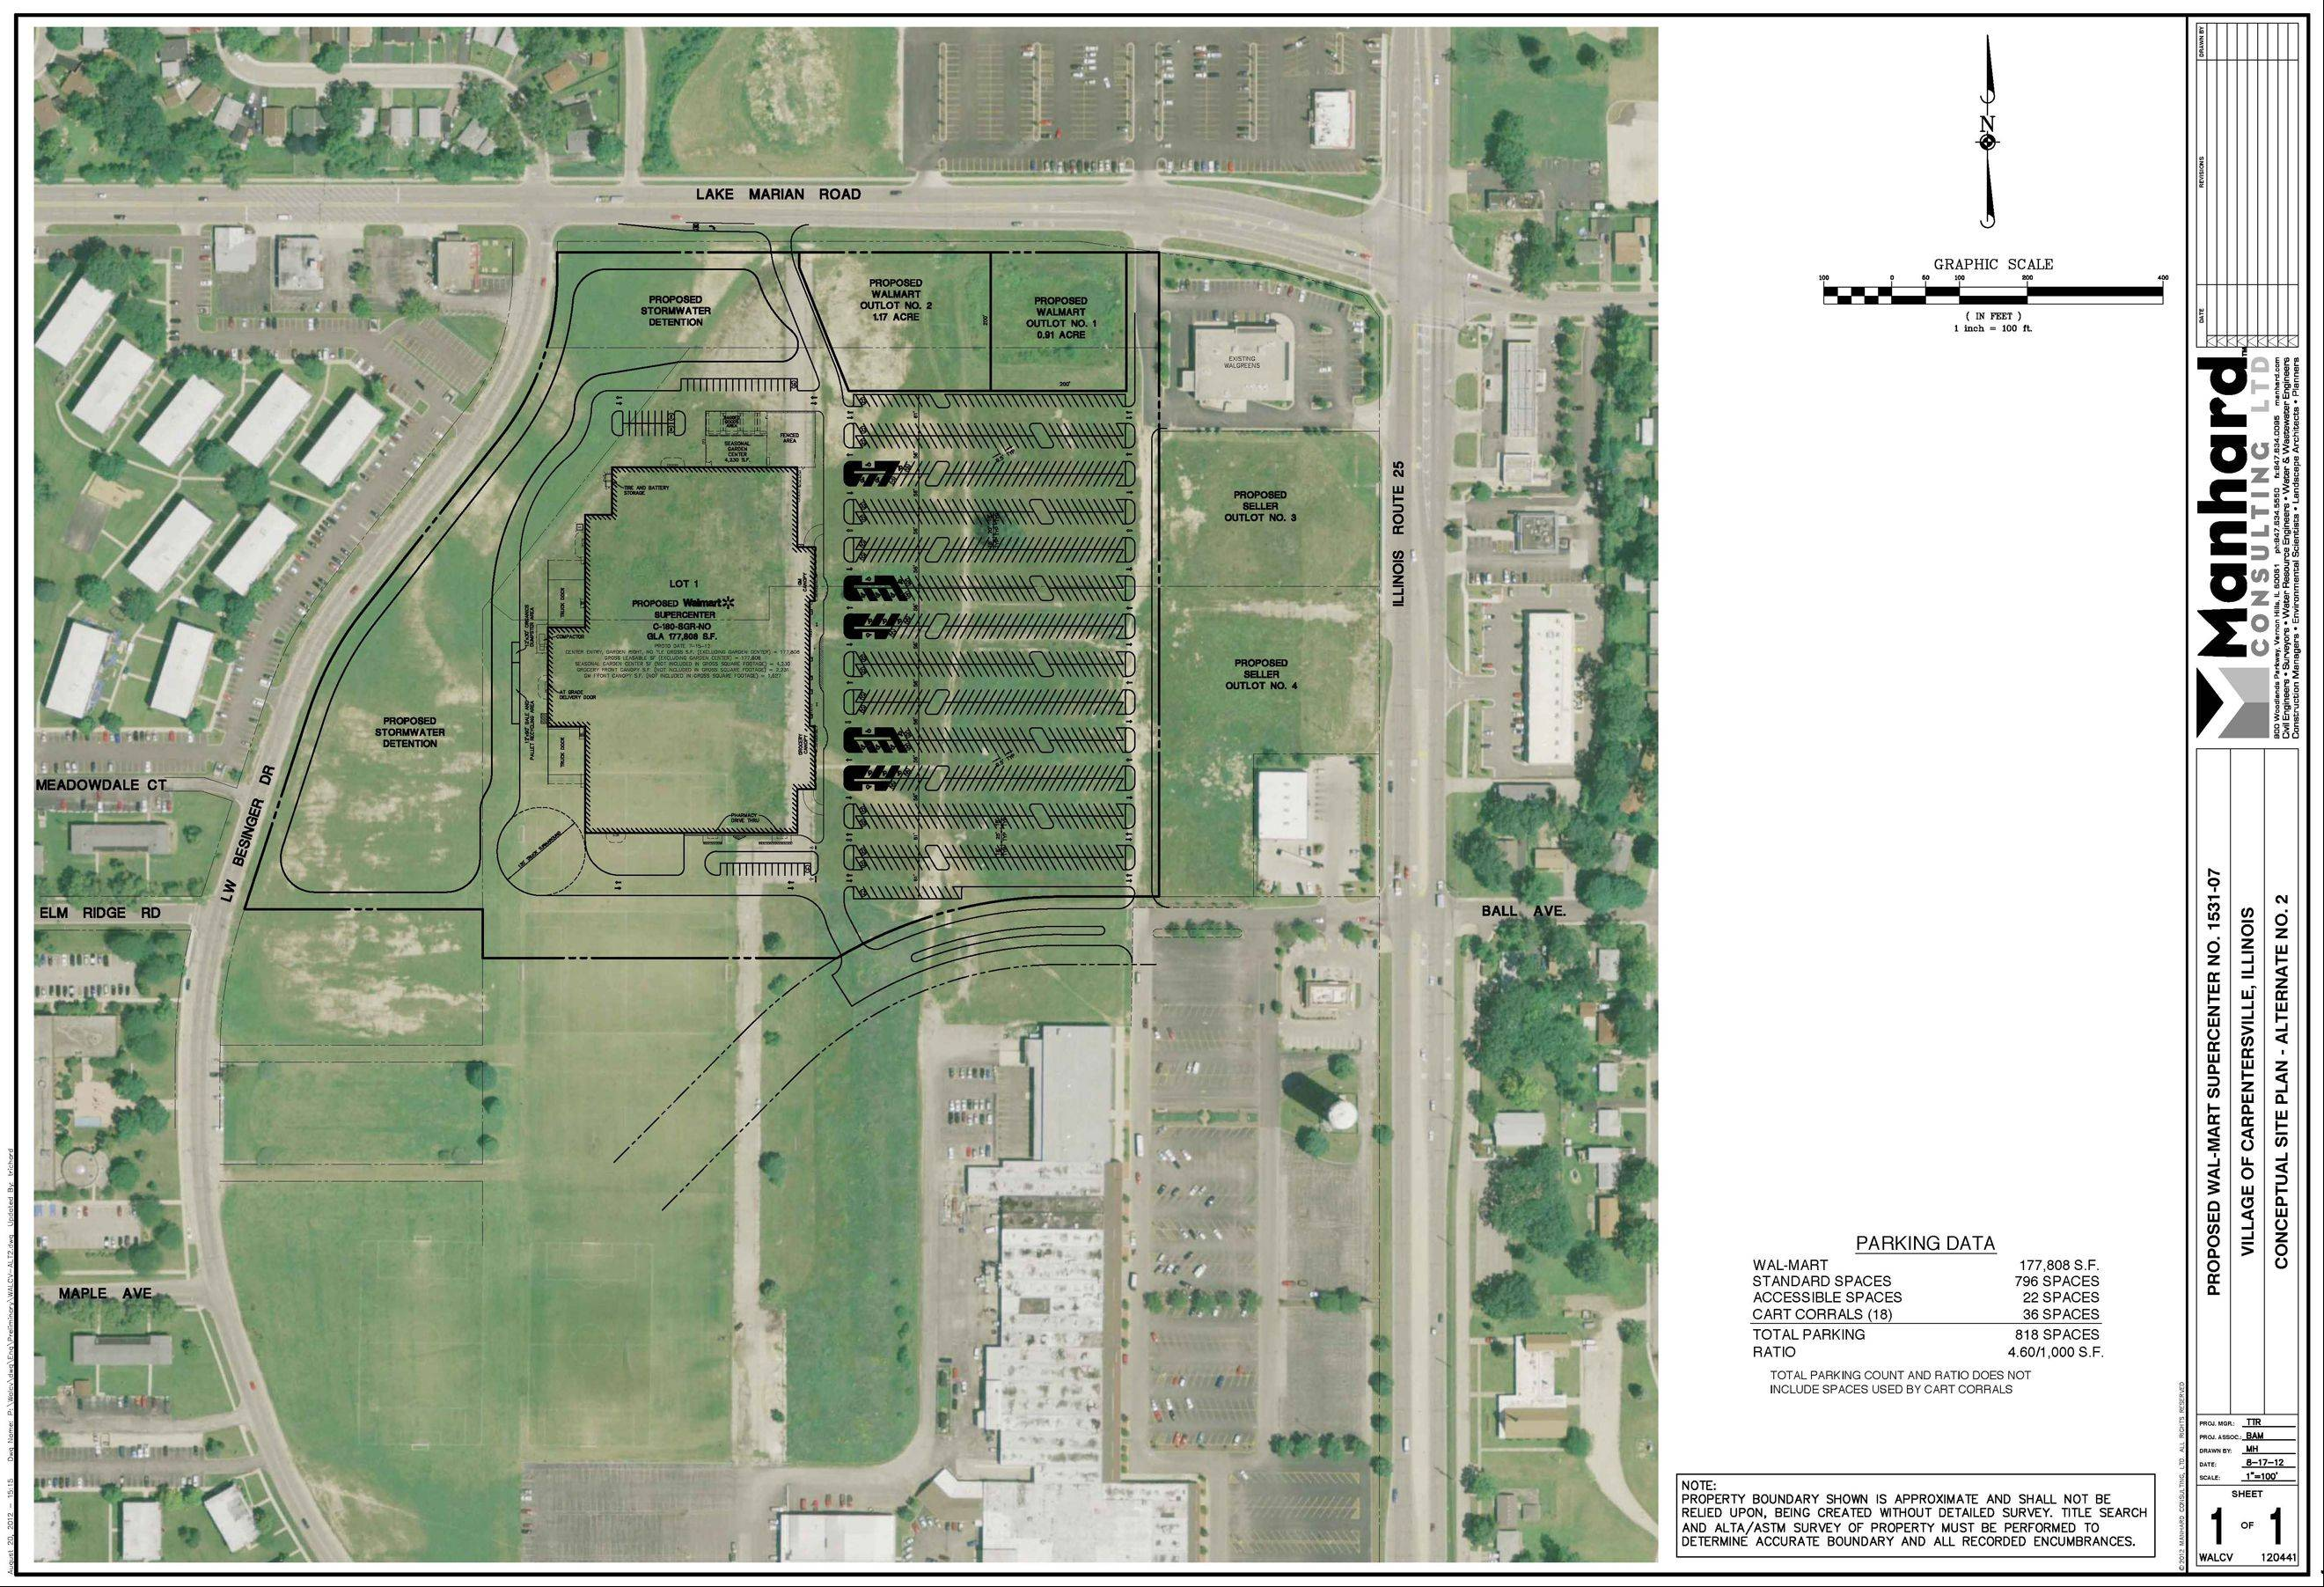 This site plan shows the location of a proposed Walmart super center at the corner of Lake Marian Road and Route 25 in Carpentersville. Village trustees got a look at and discussed the concept plan last week.